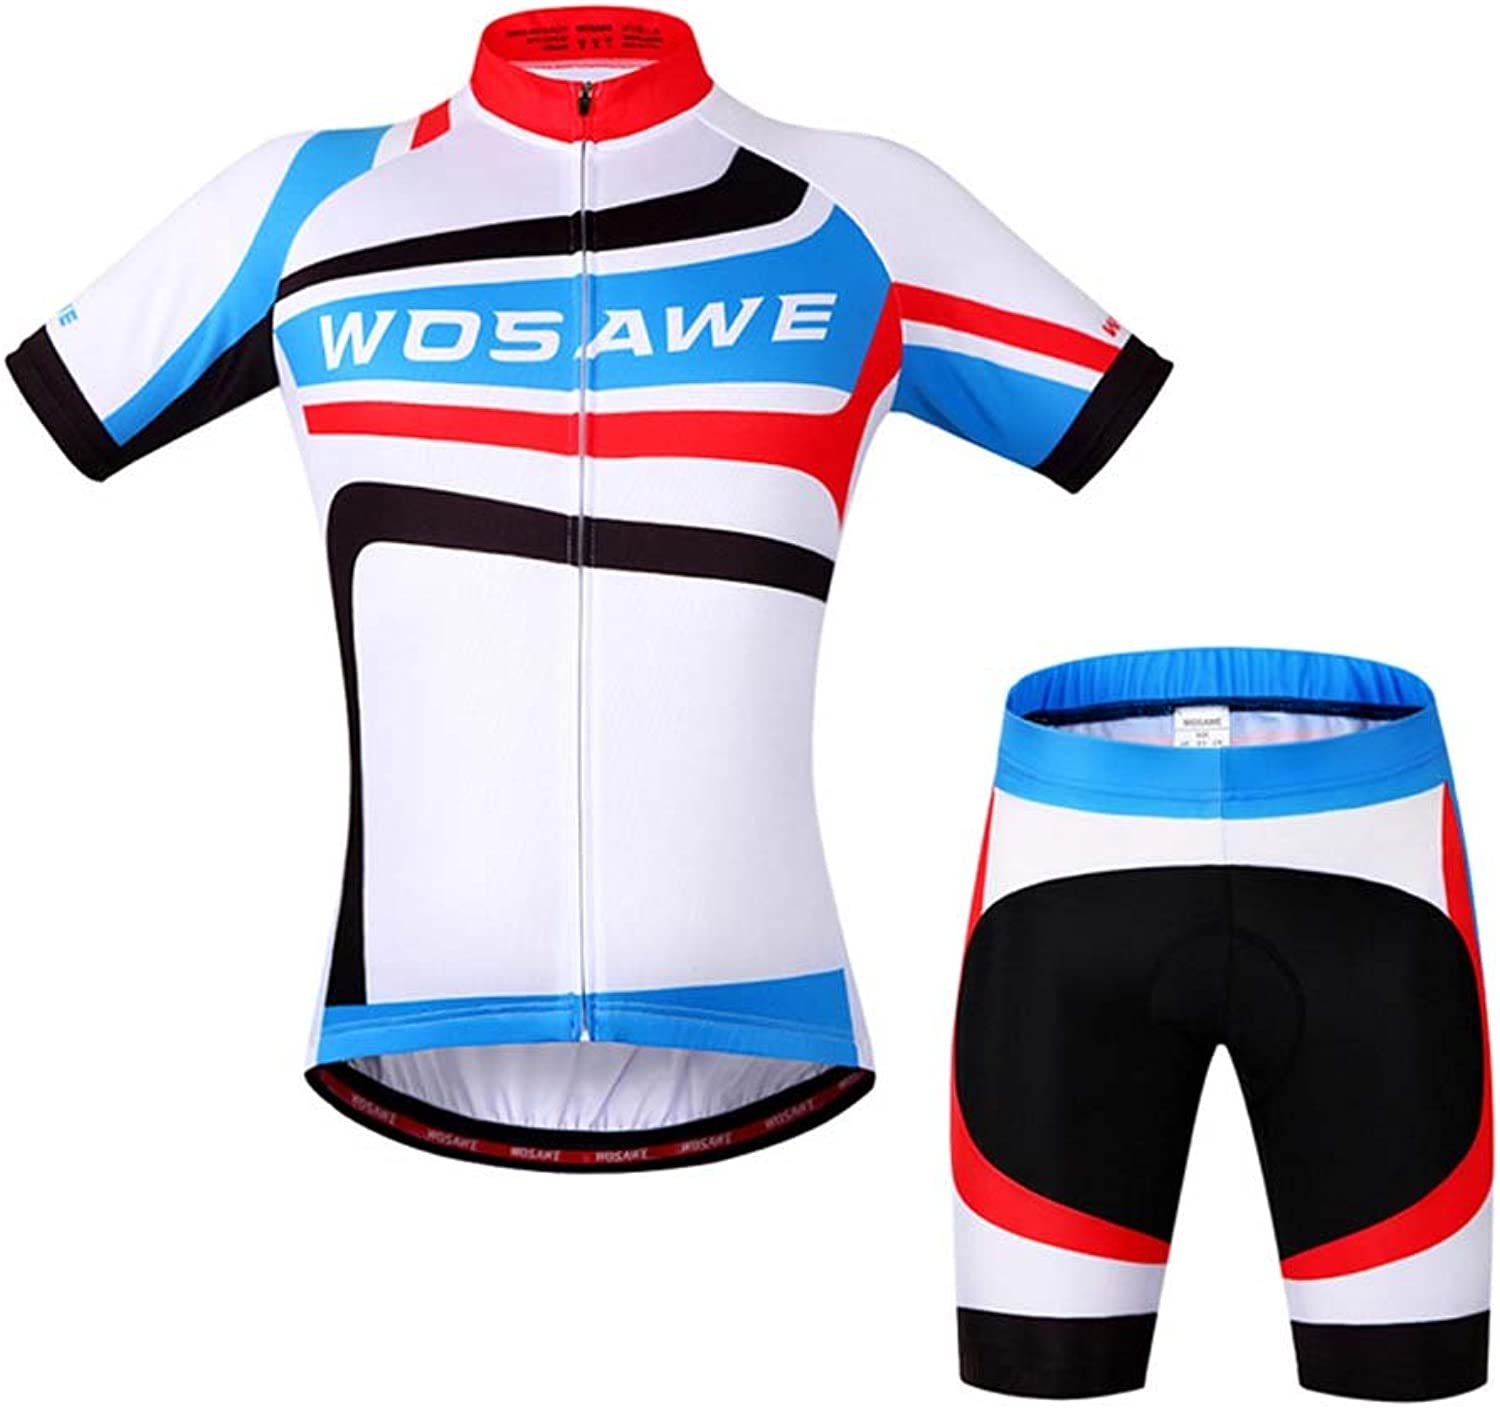 Mens Cycling Jersey Short Sleeve Shirts and Shorts Cycling Suits Quick Dry 3D Gel Padded Biking Clothing Sportswear